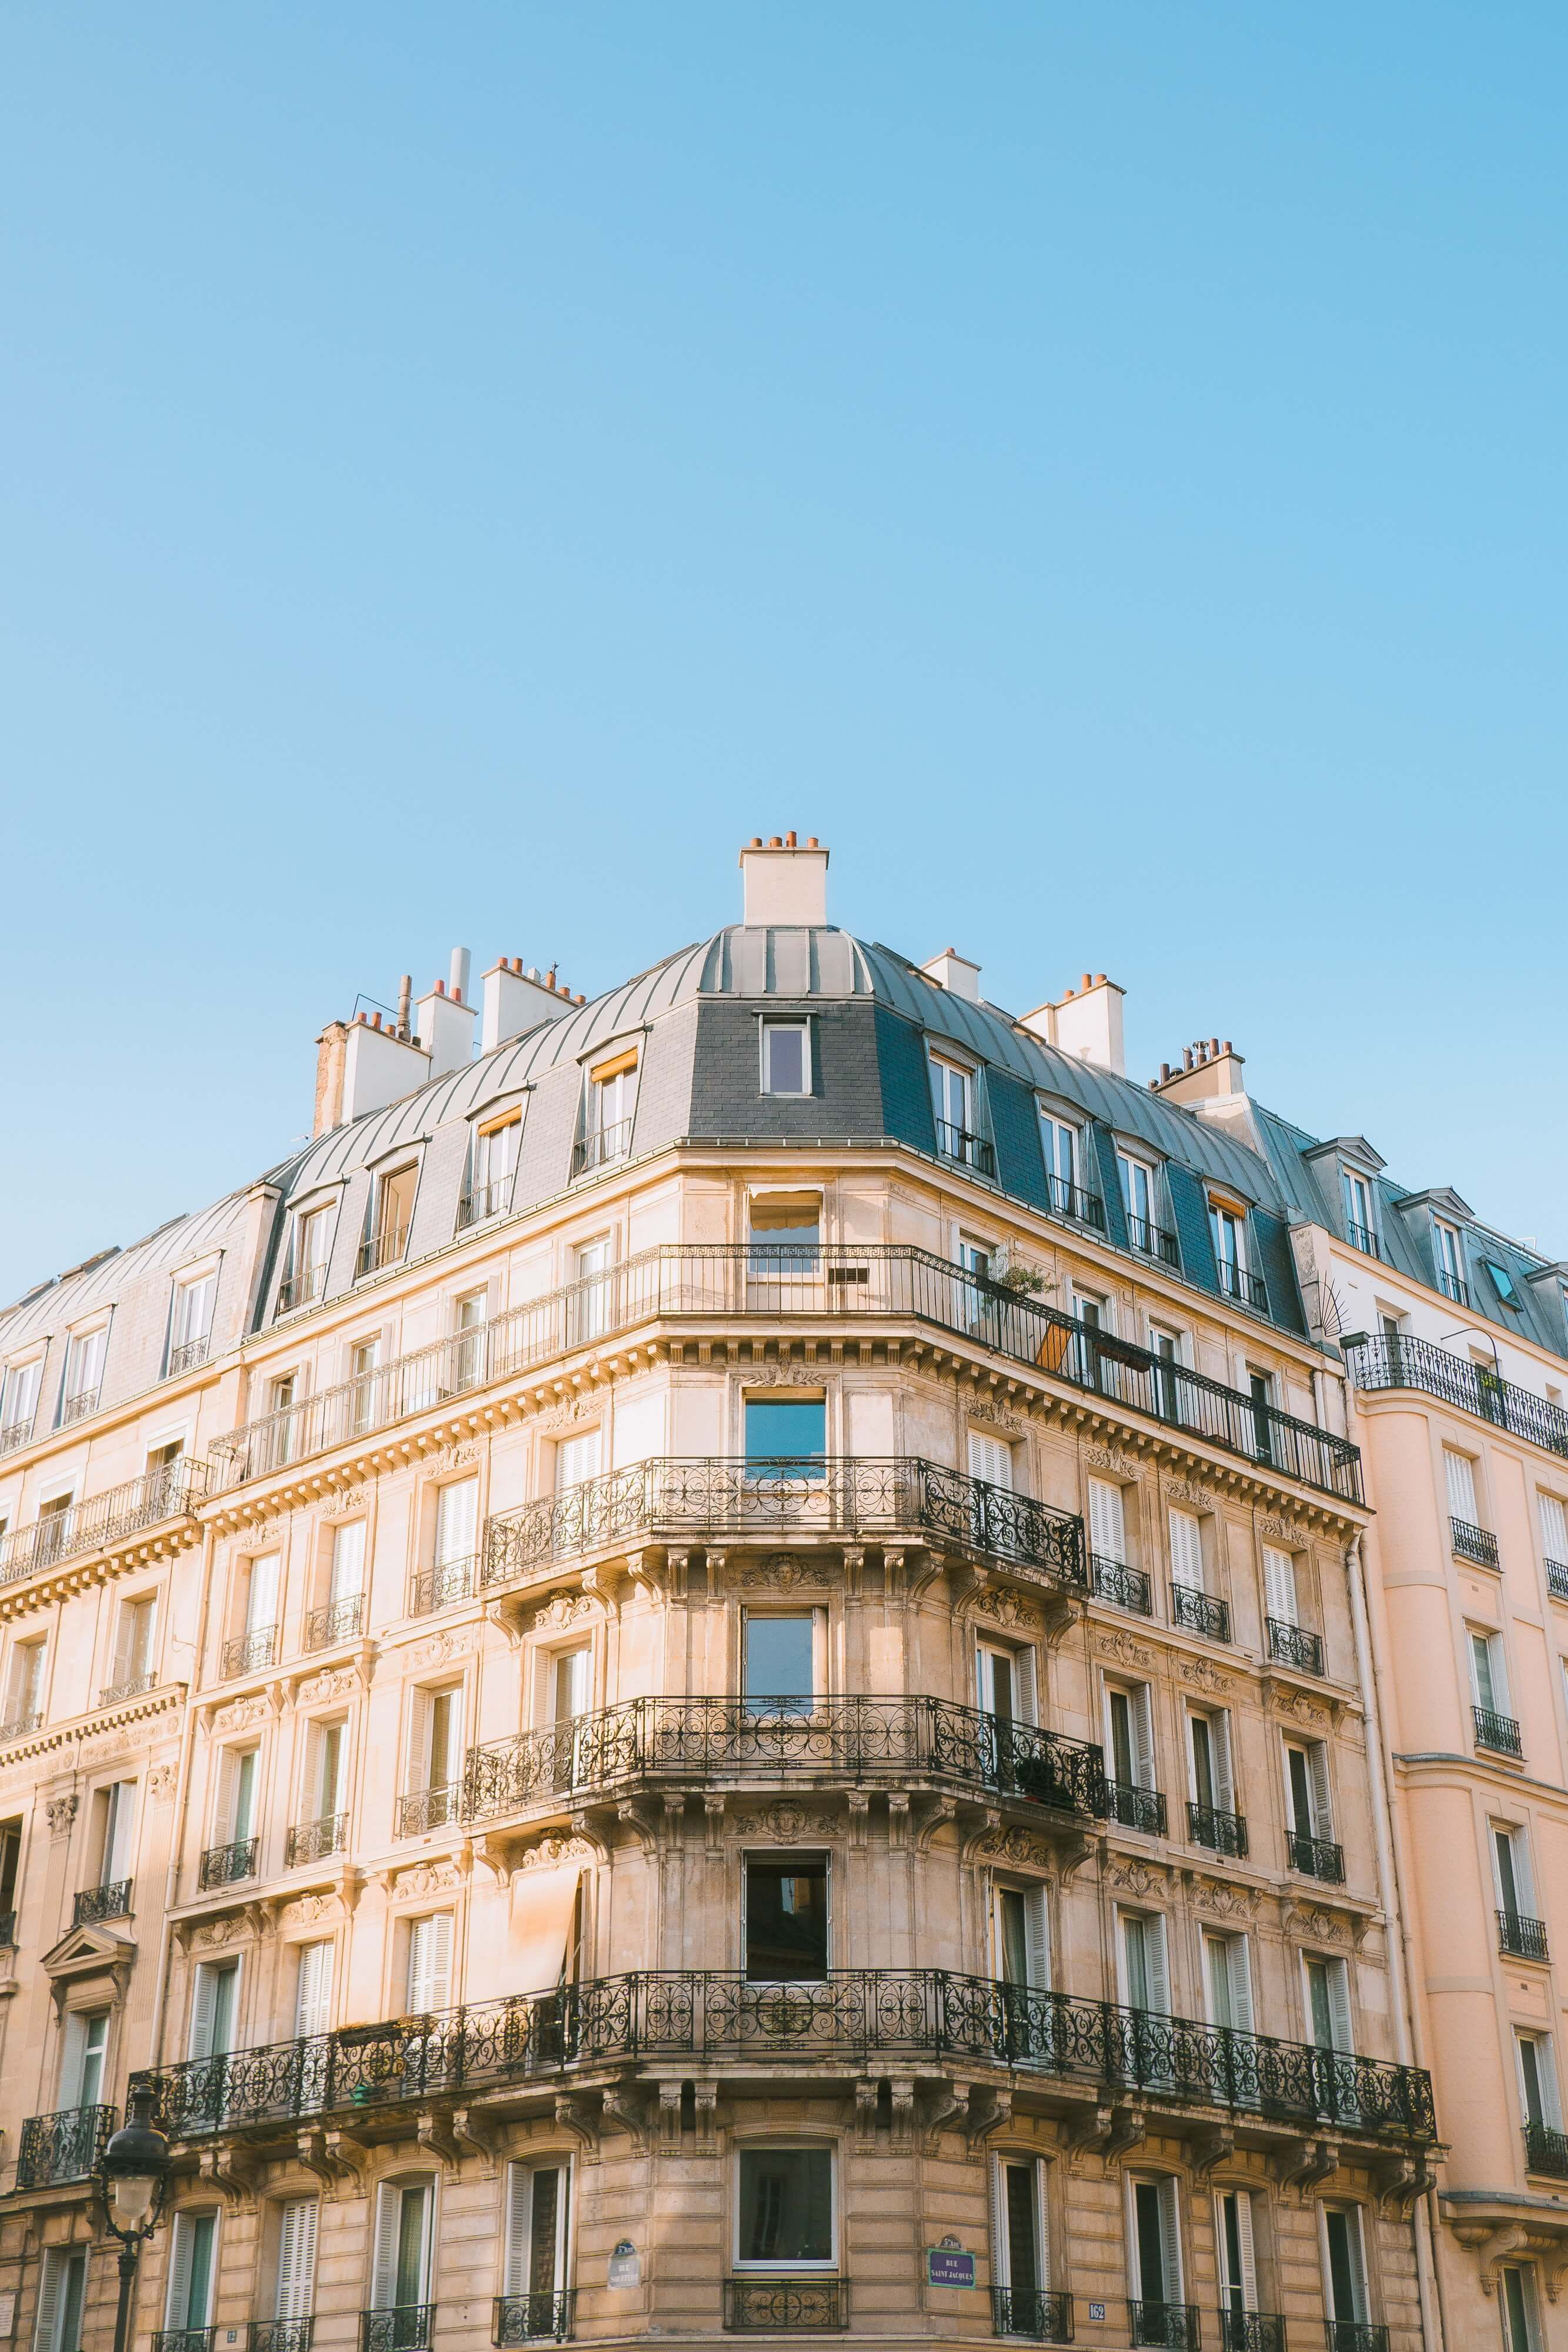 Housing building in a french city